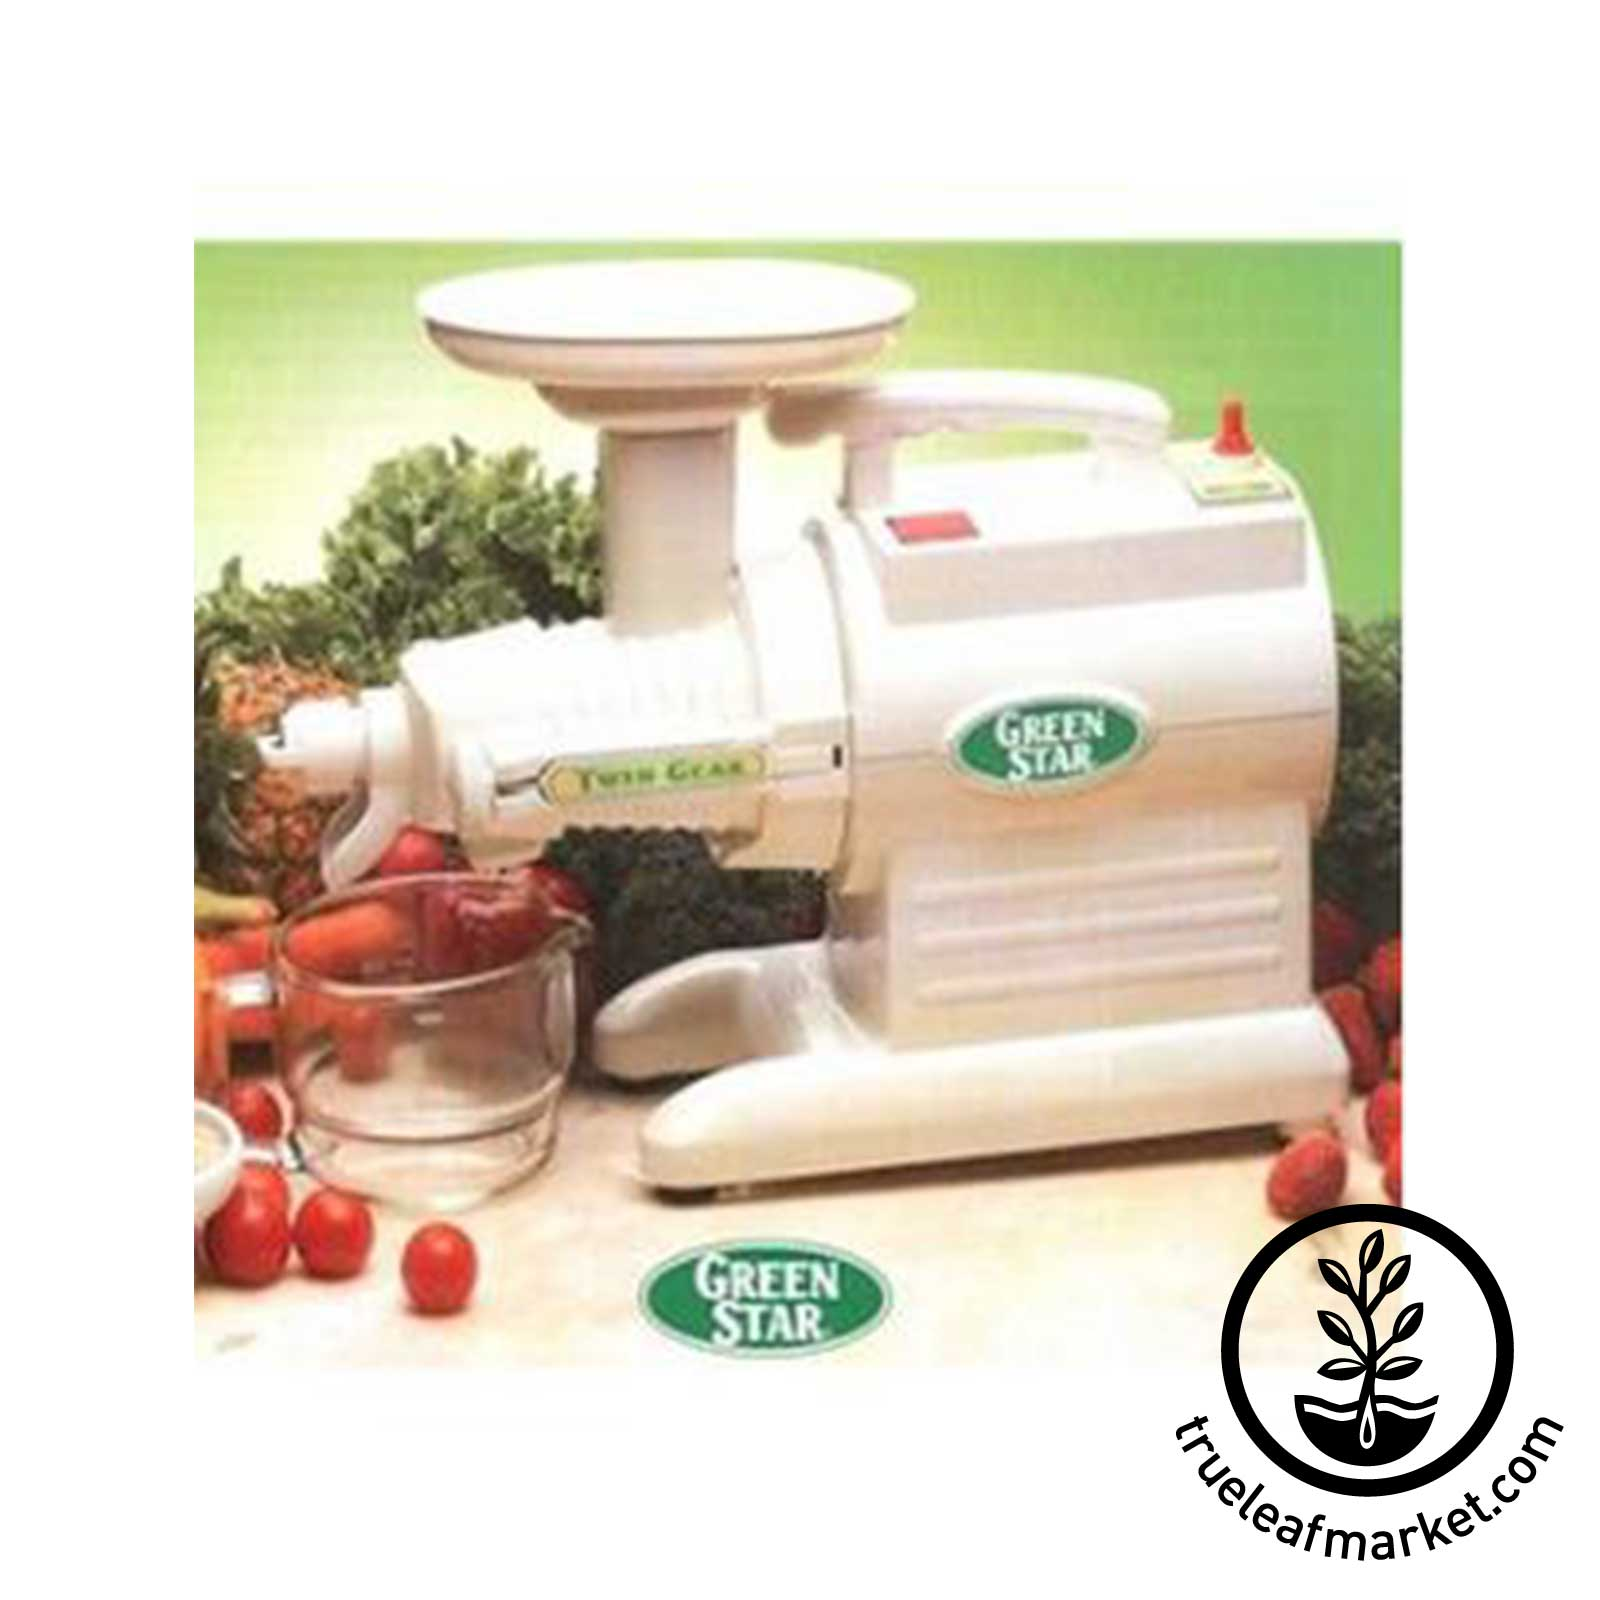 Green Star GS-3000 Juicer by Tribest